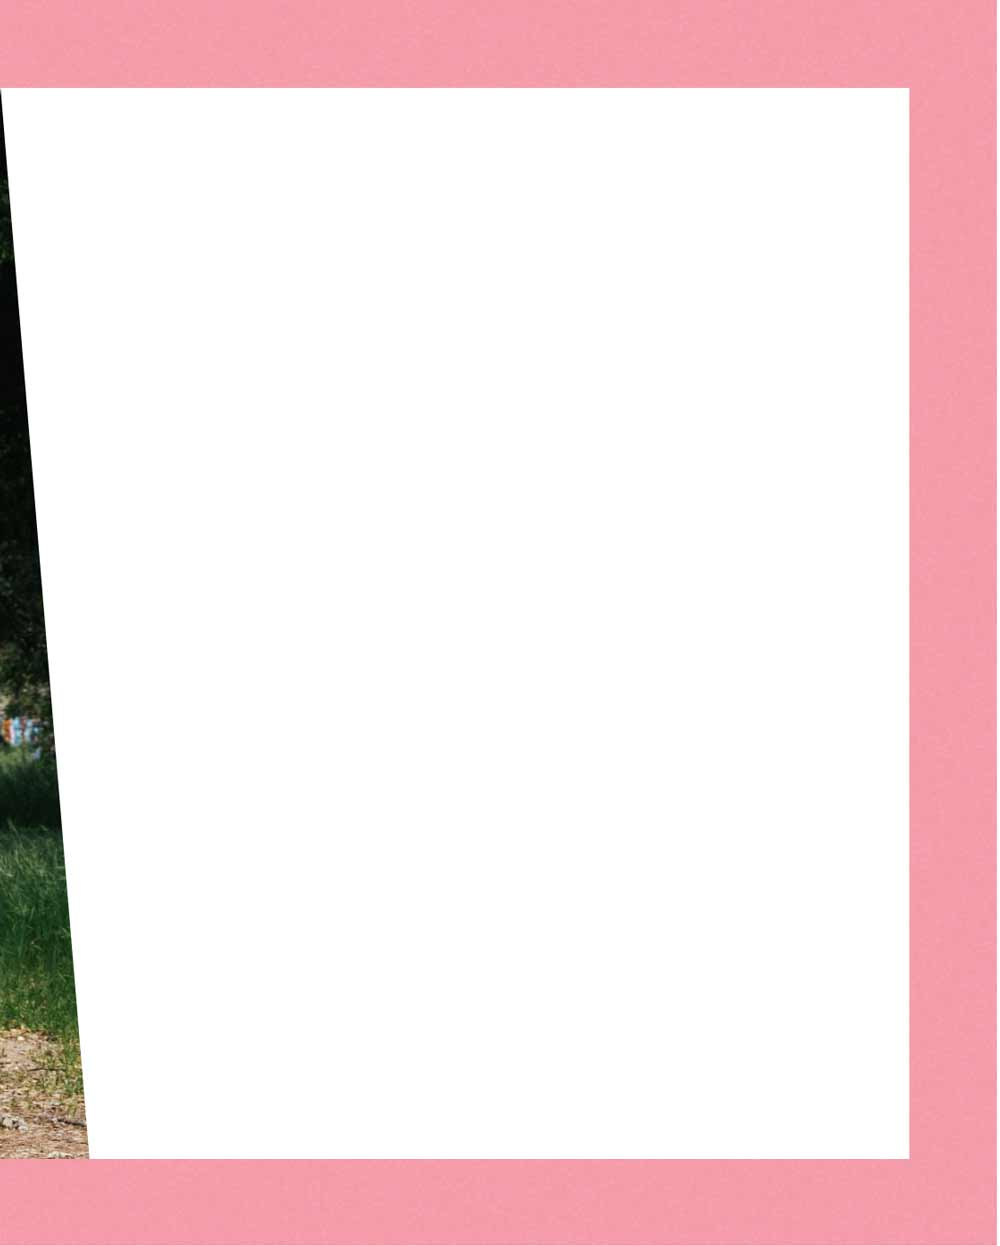 White background with pink border